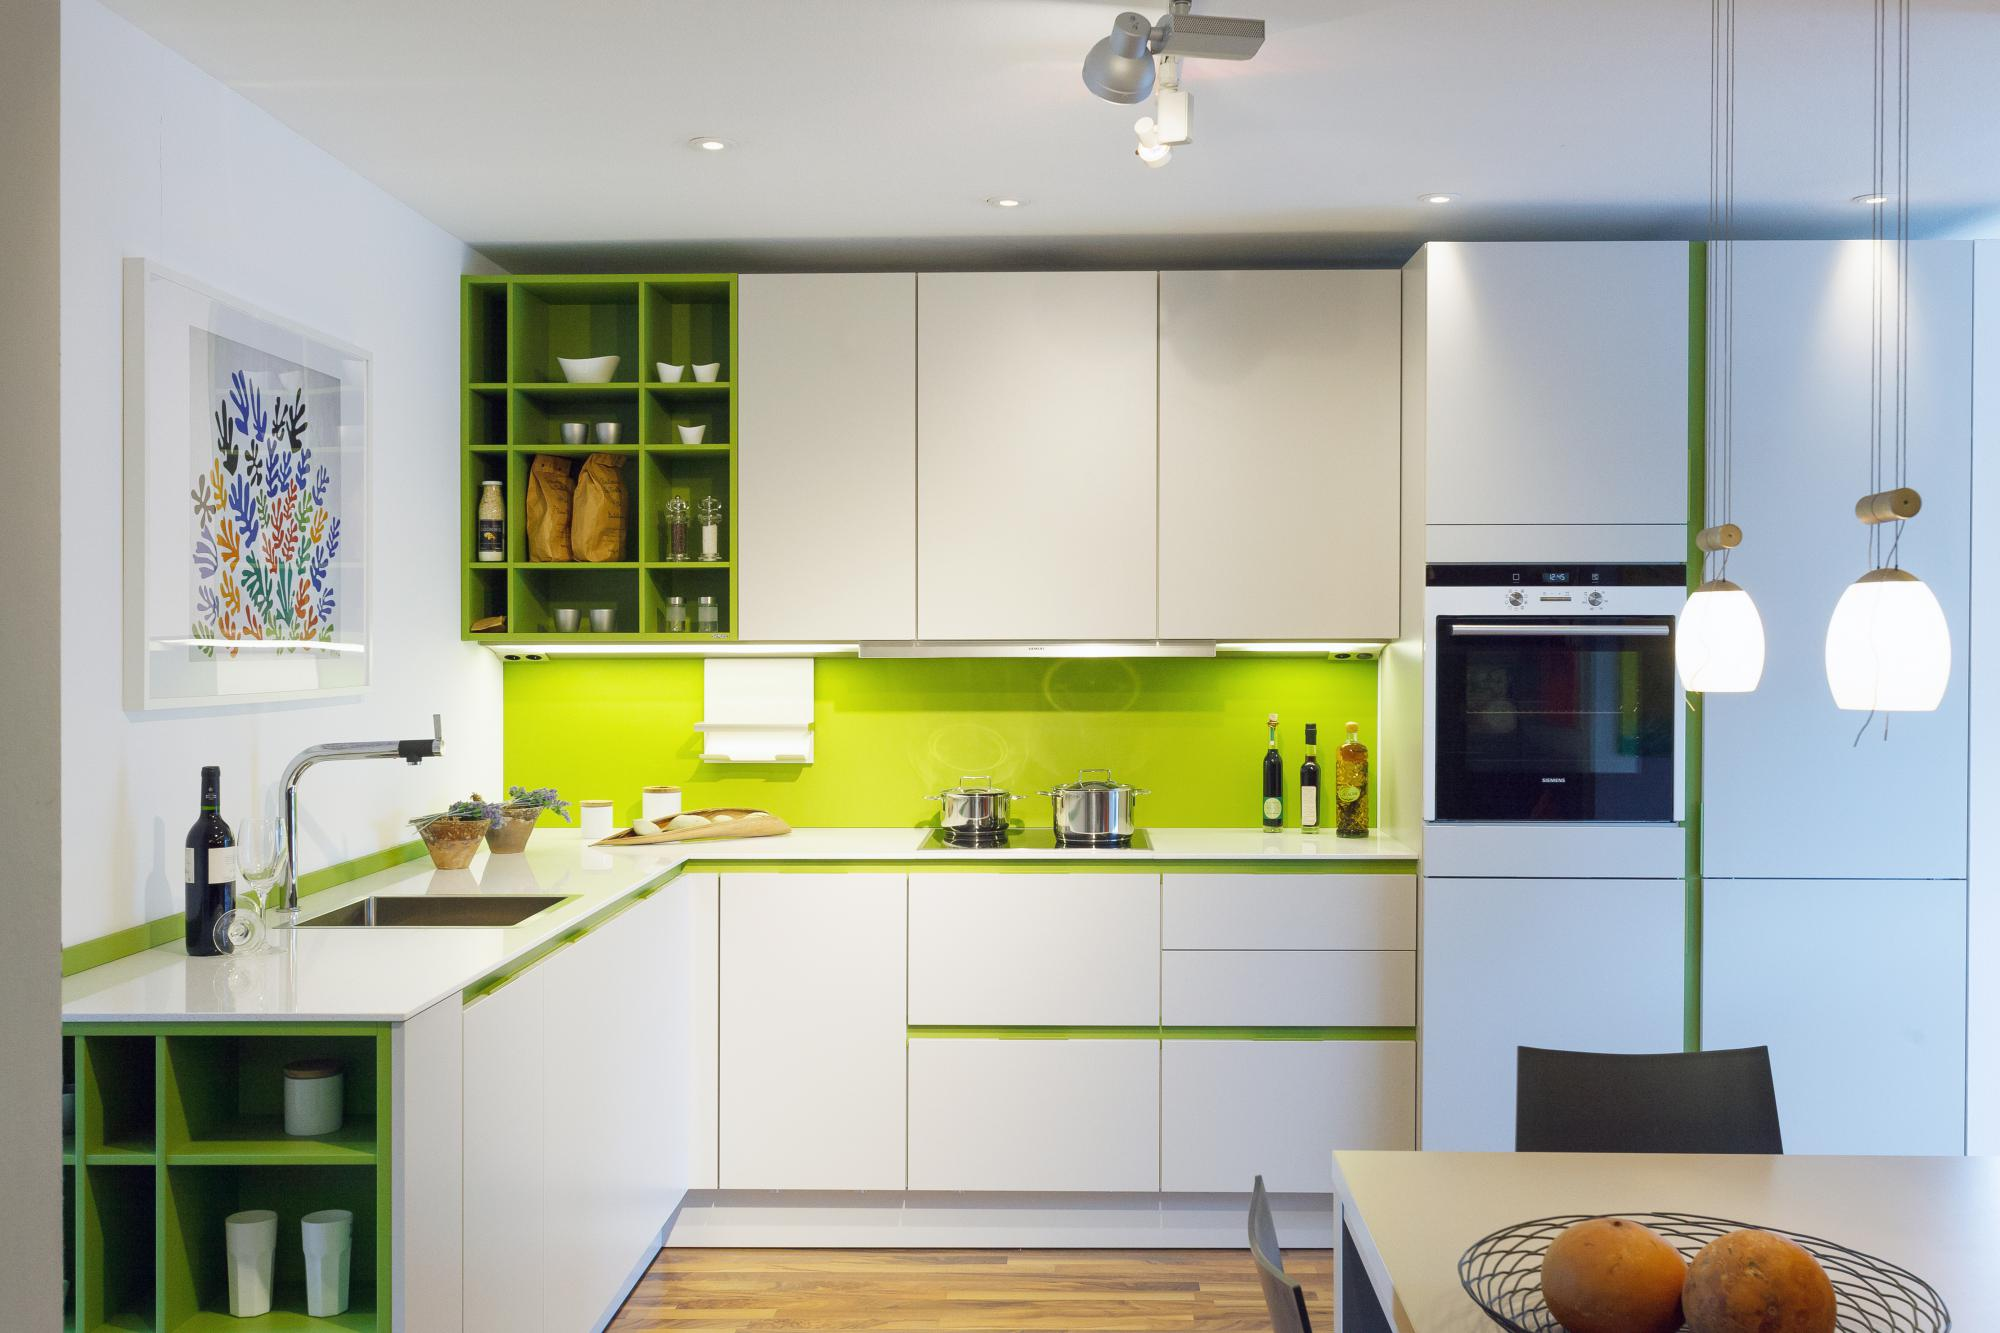 Contemporary kitchen design kitchens with a pop of color for Contemporary kitchen